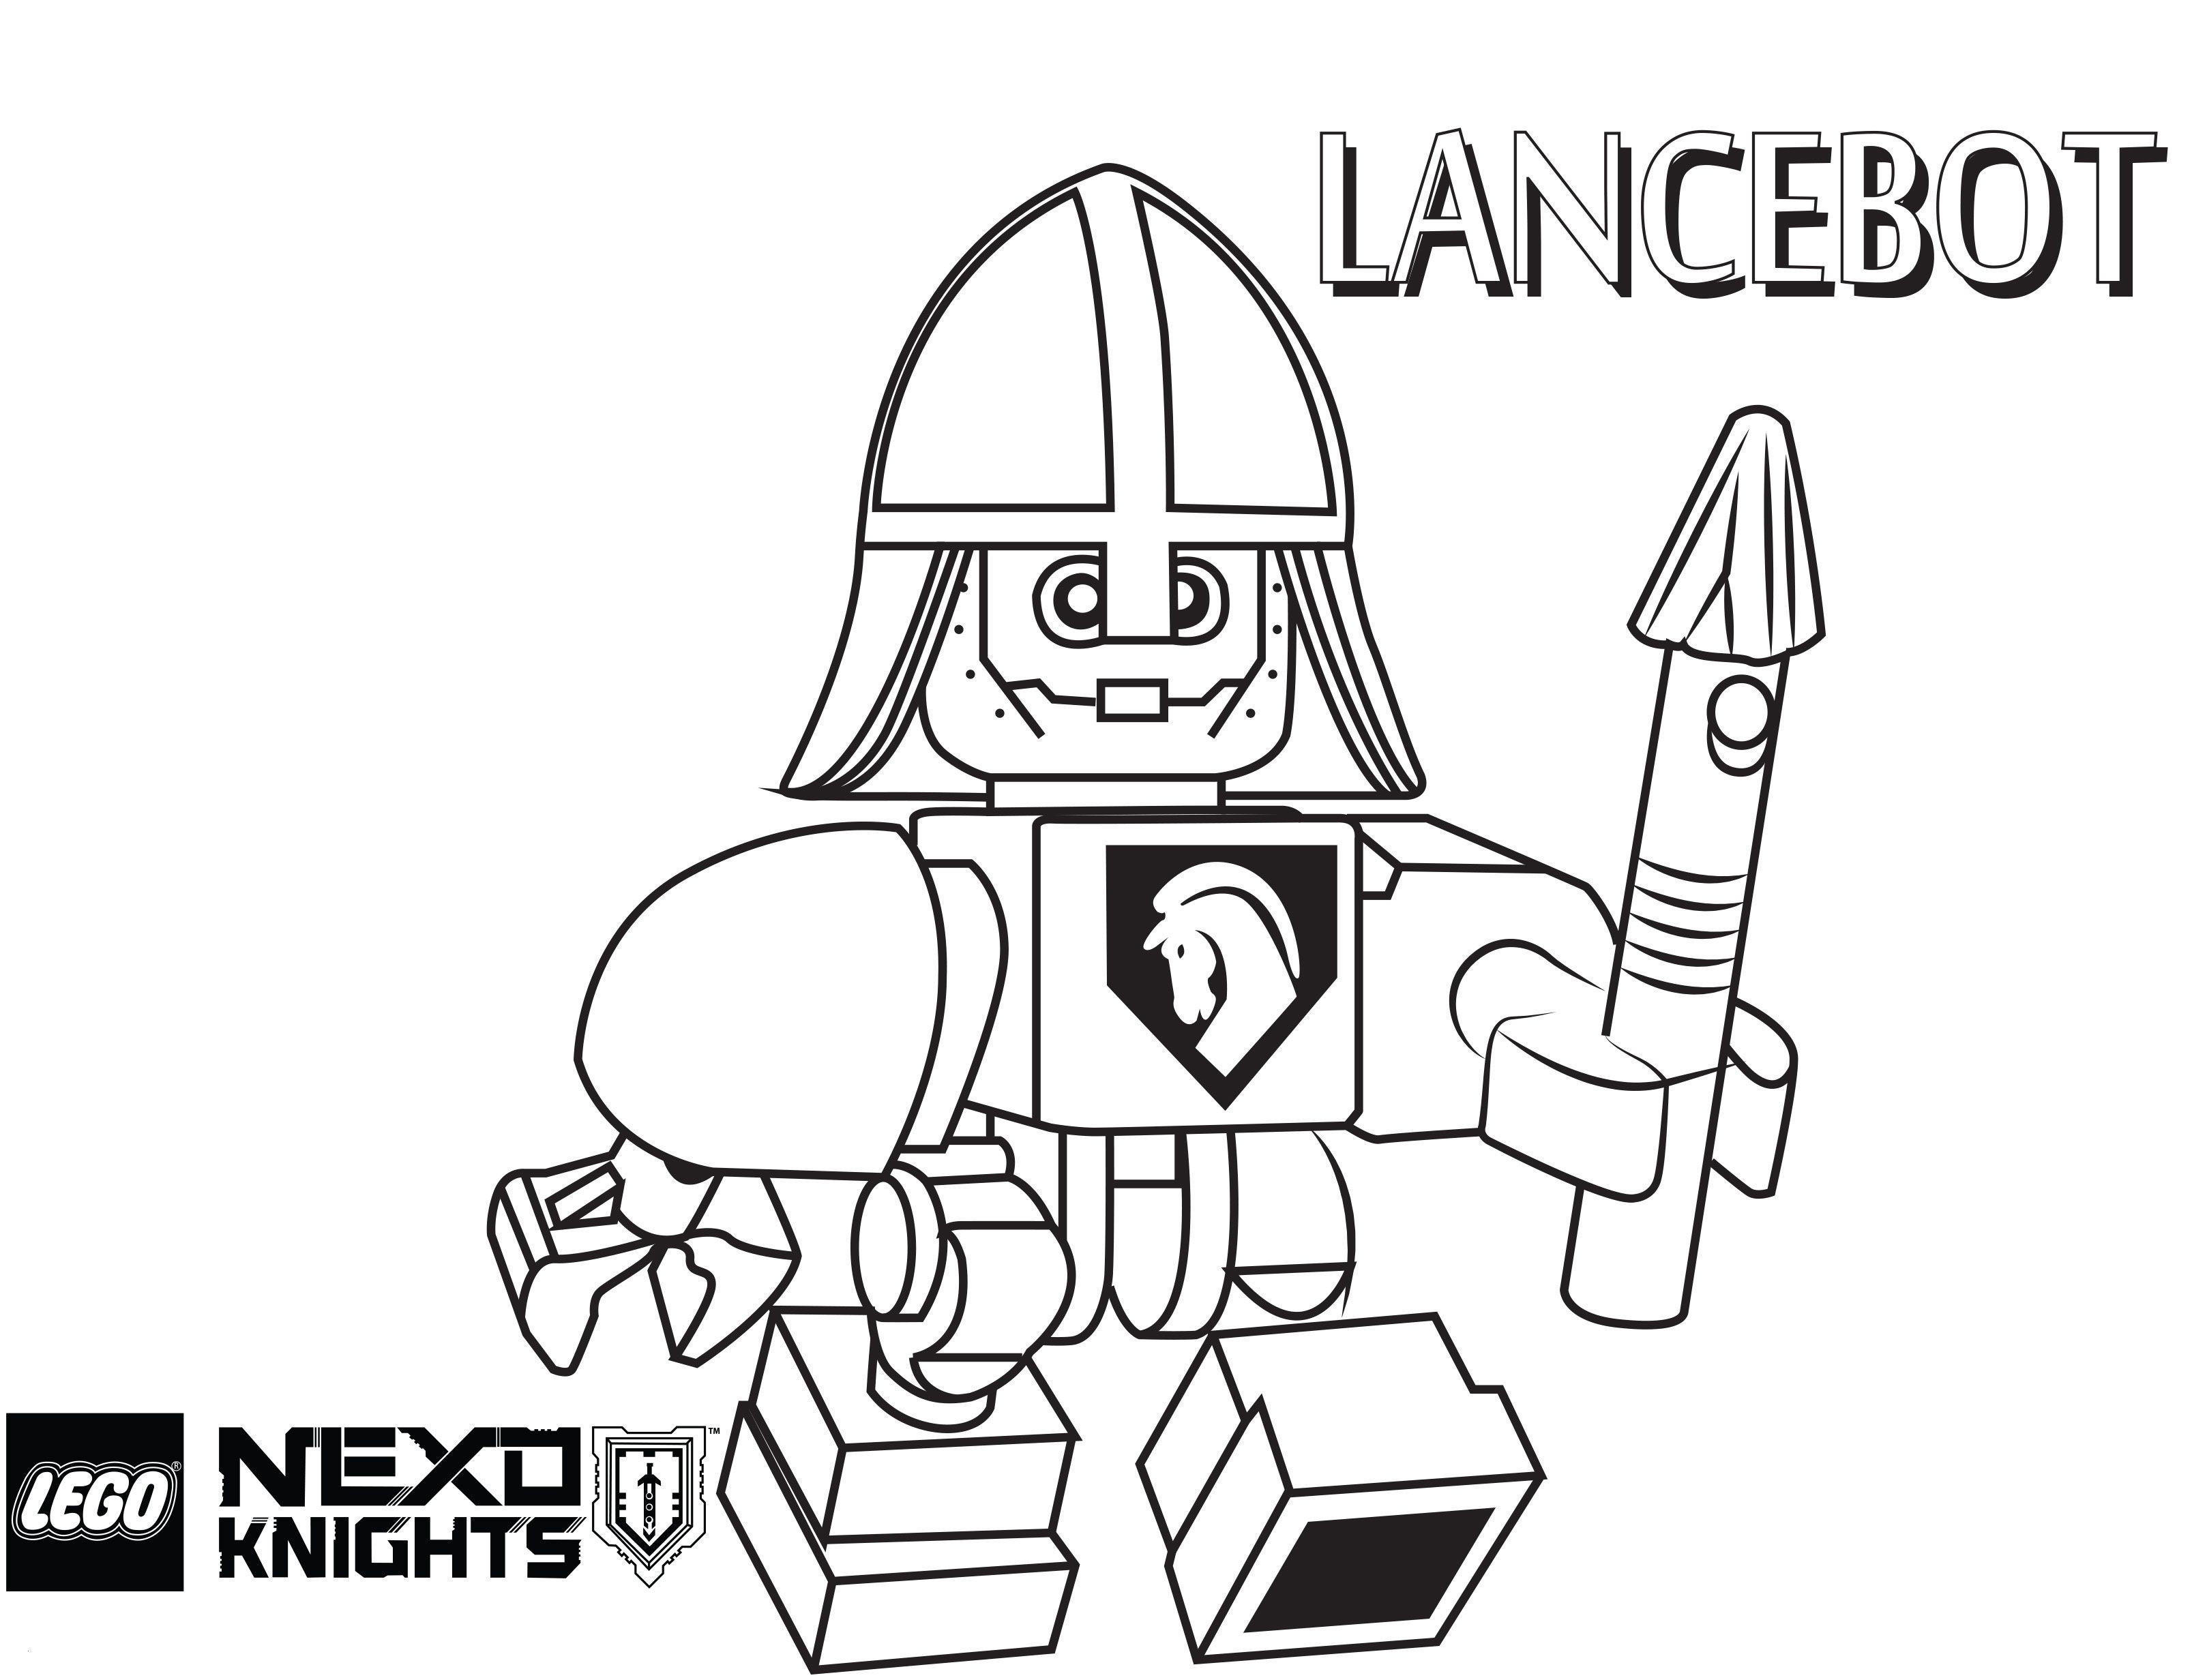 Ausmalbilder Lego Nexo Knights Genial Lego Nexo Knights Coloring Pages Free Printable Lego Nexo Knights Galerie